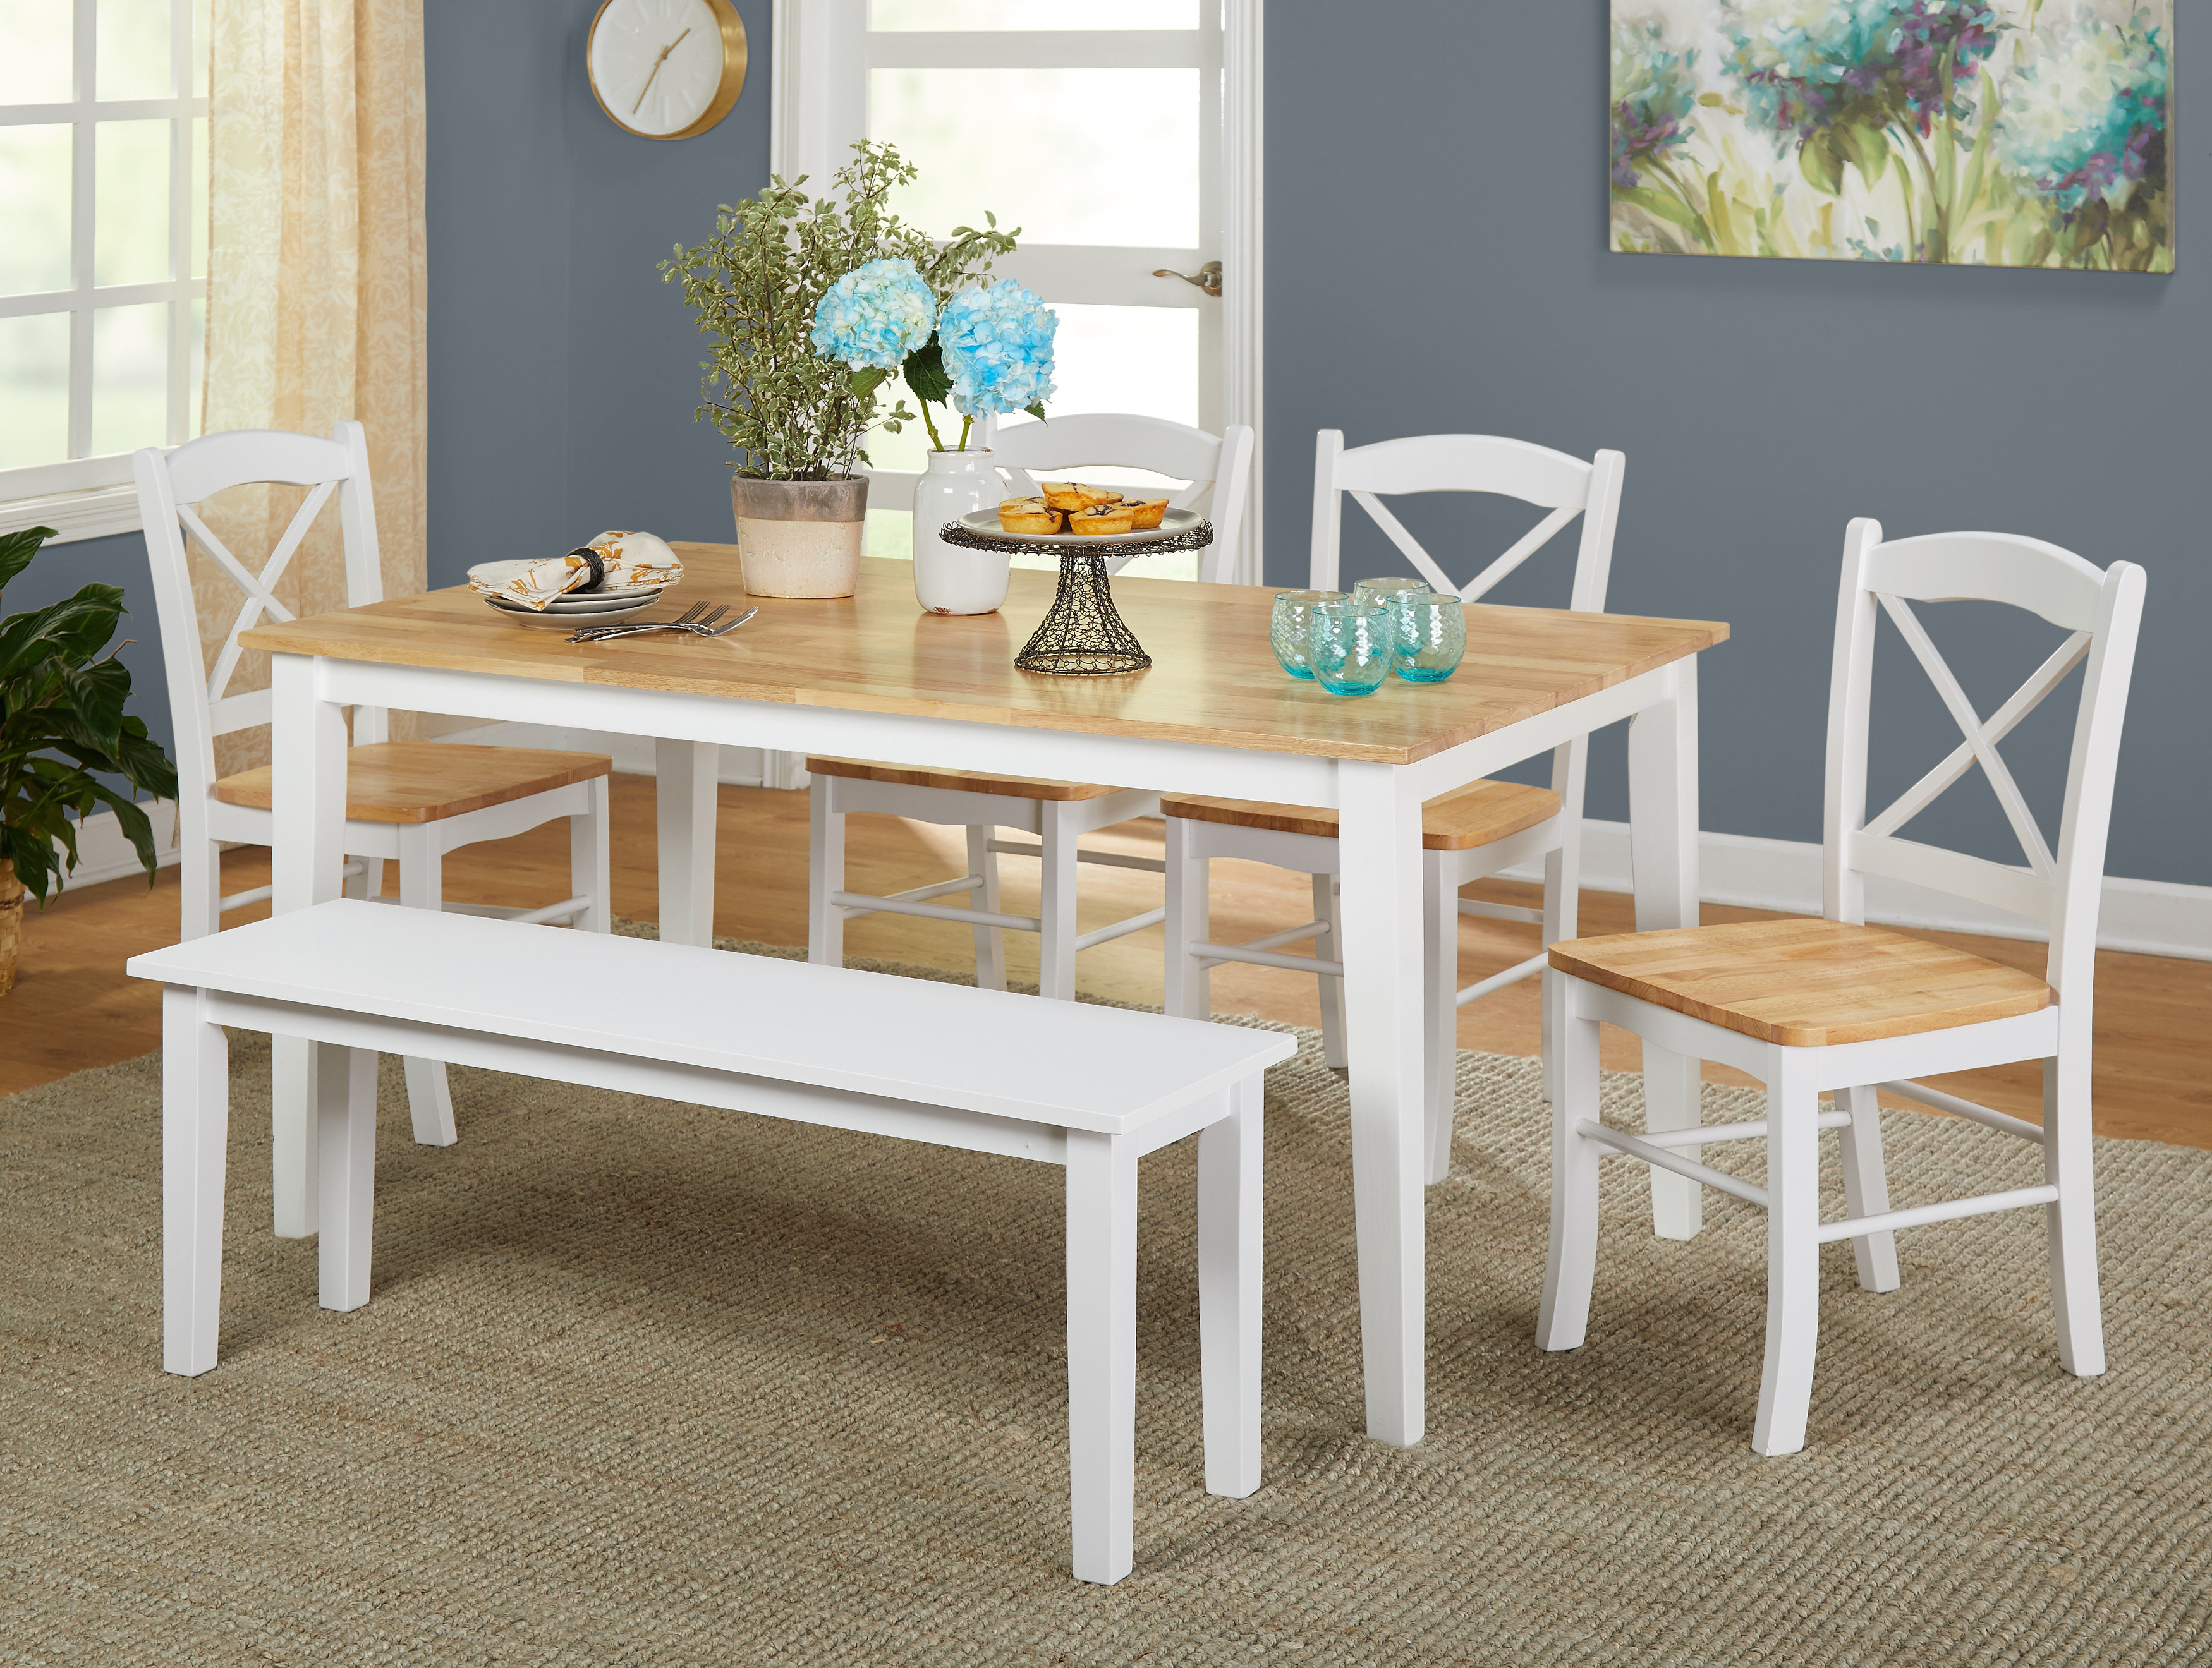 Birch Lane Pertaining To Osterman 6 Piece Extendable Dining Sets (Set Of 6) (Gallery 11 of 20)